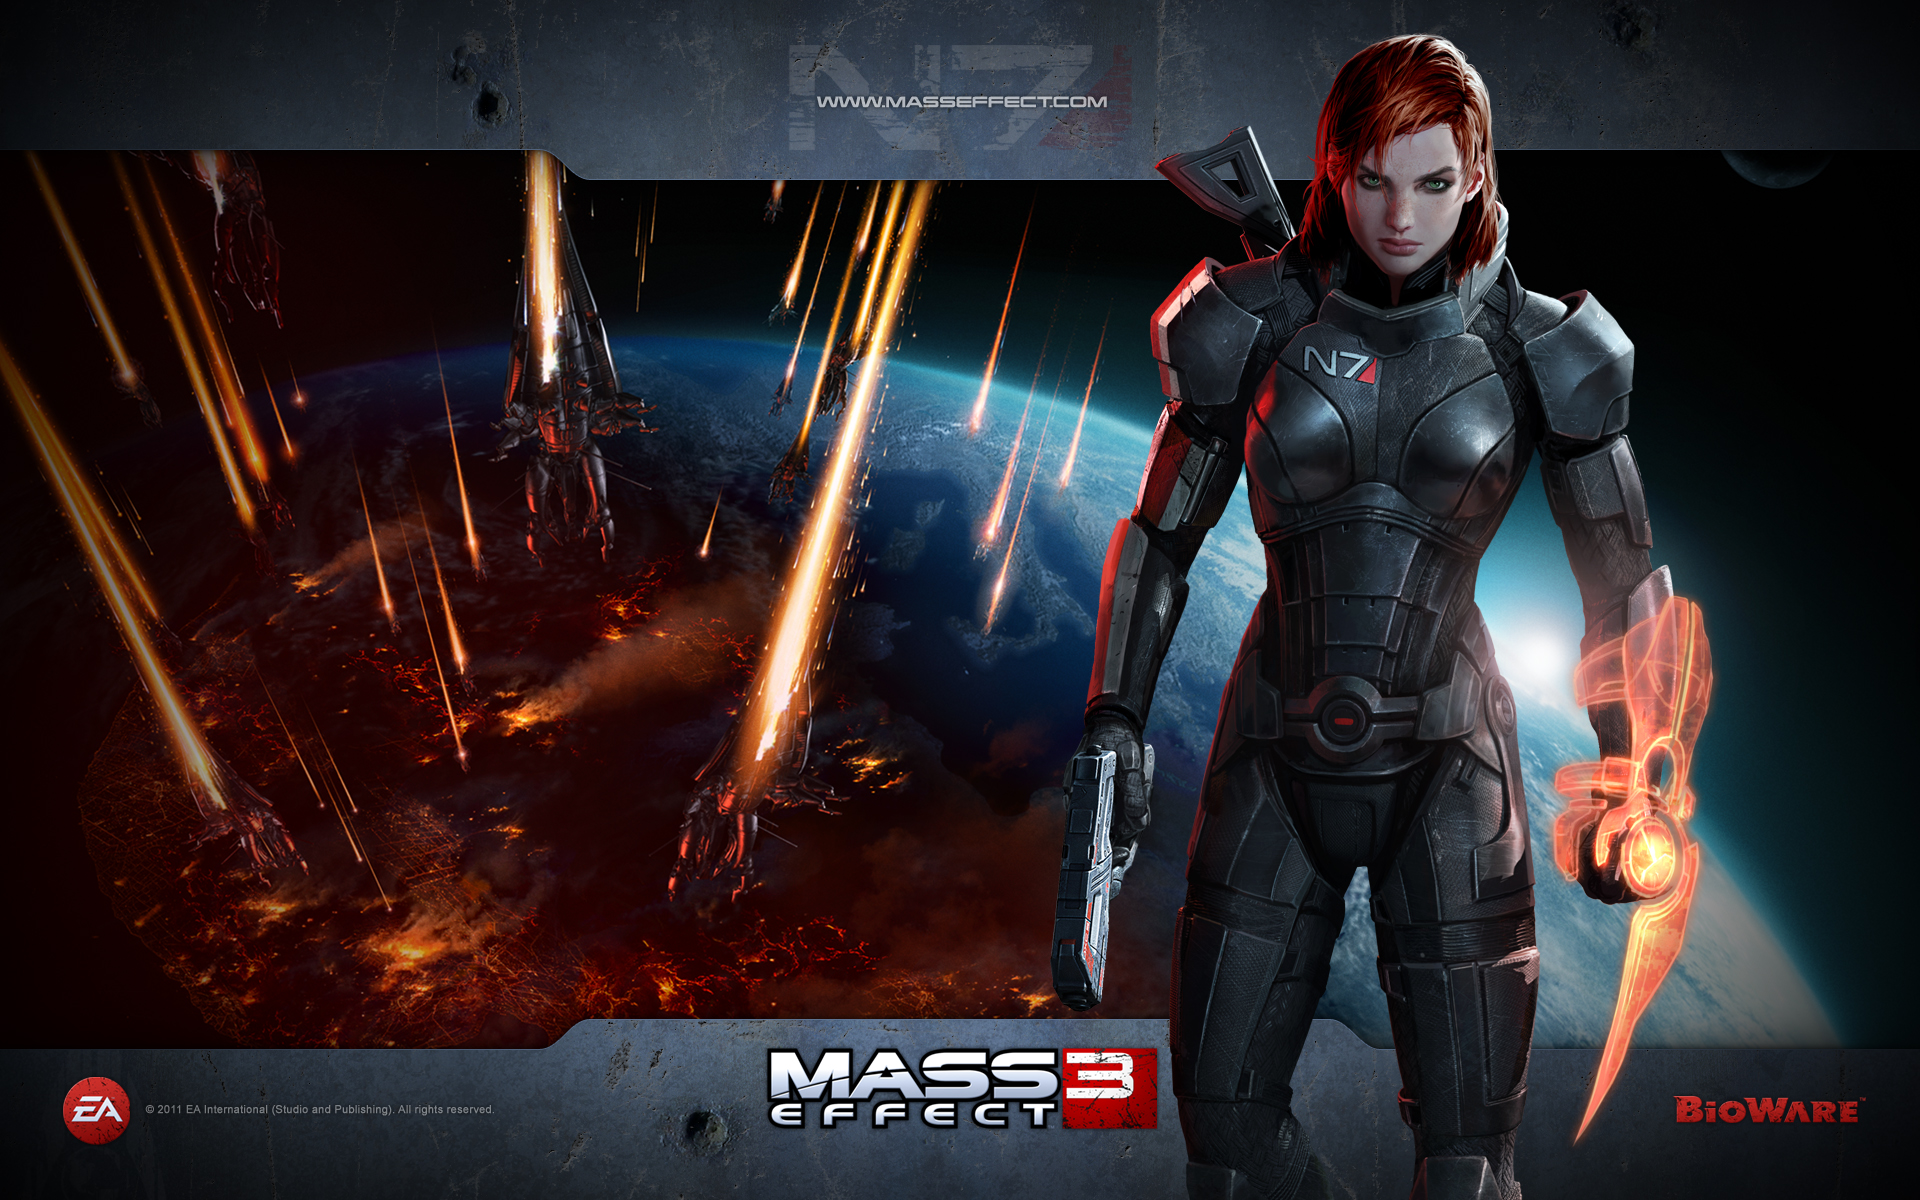 Mass effect 3 nude pack ps3 pics nude pic